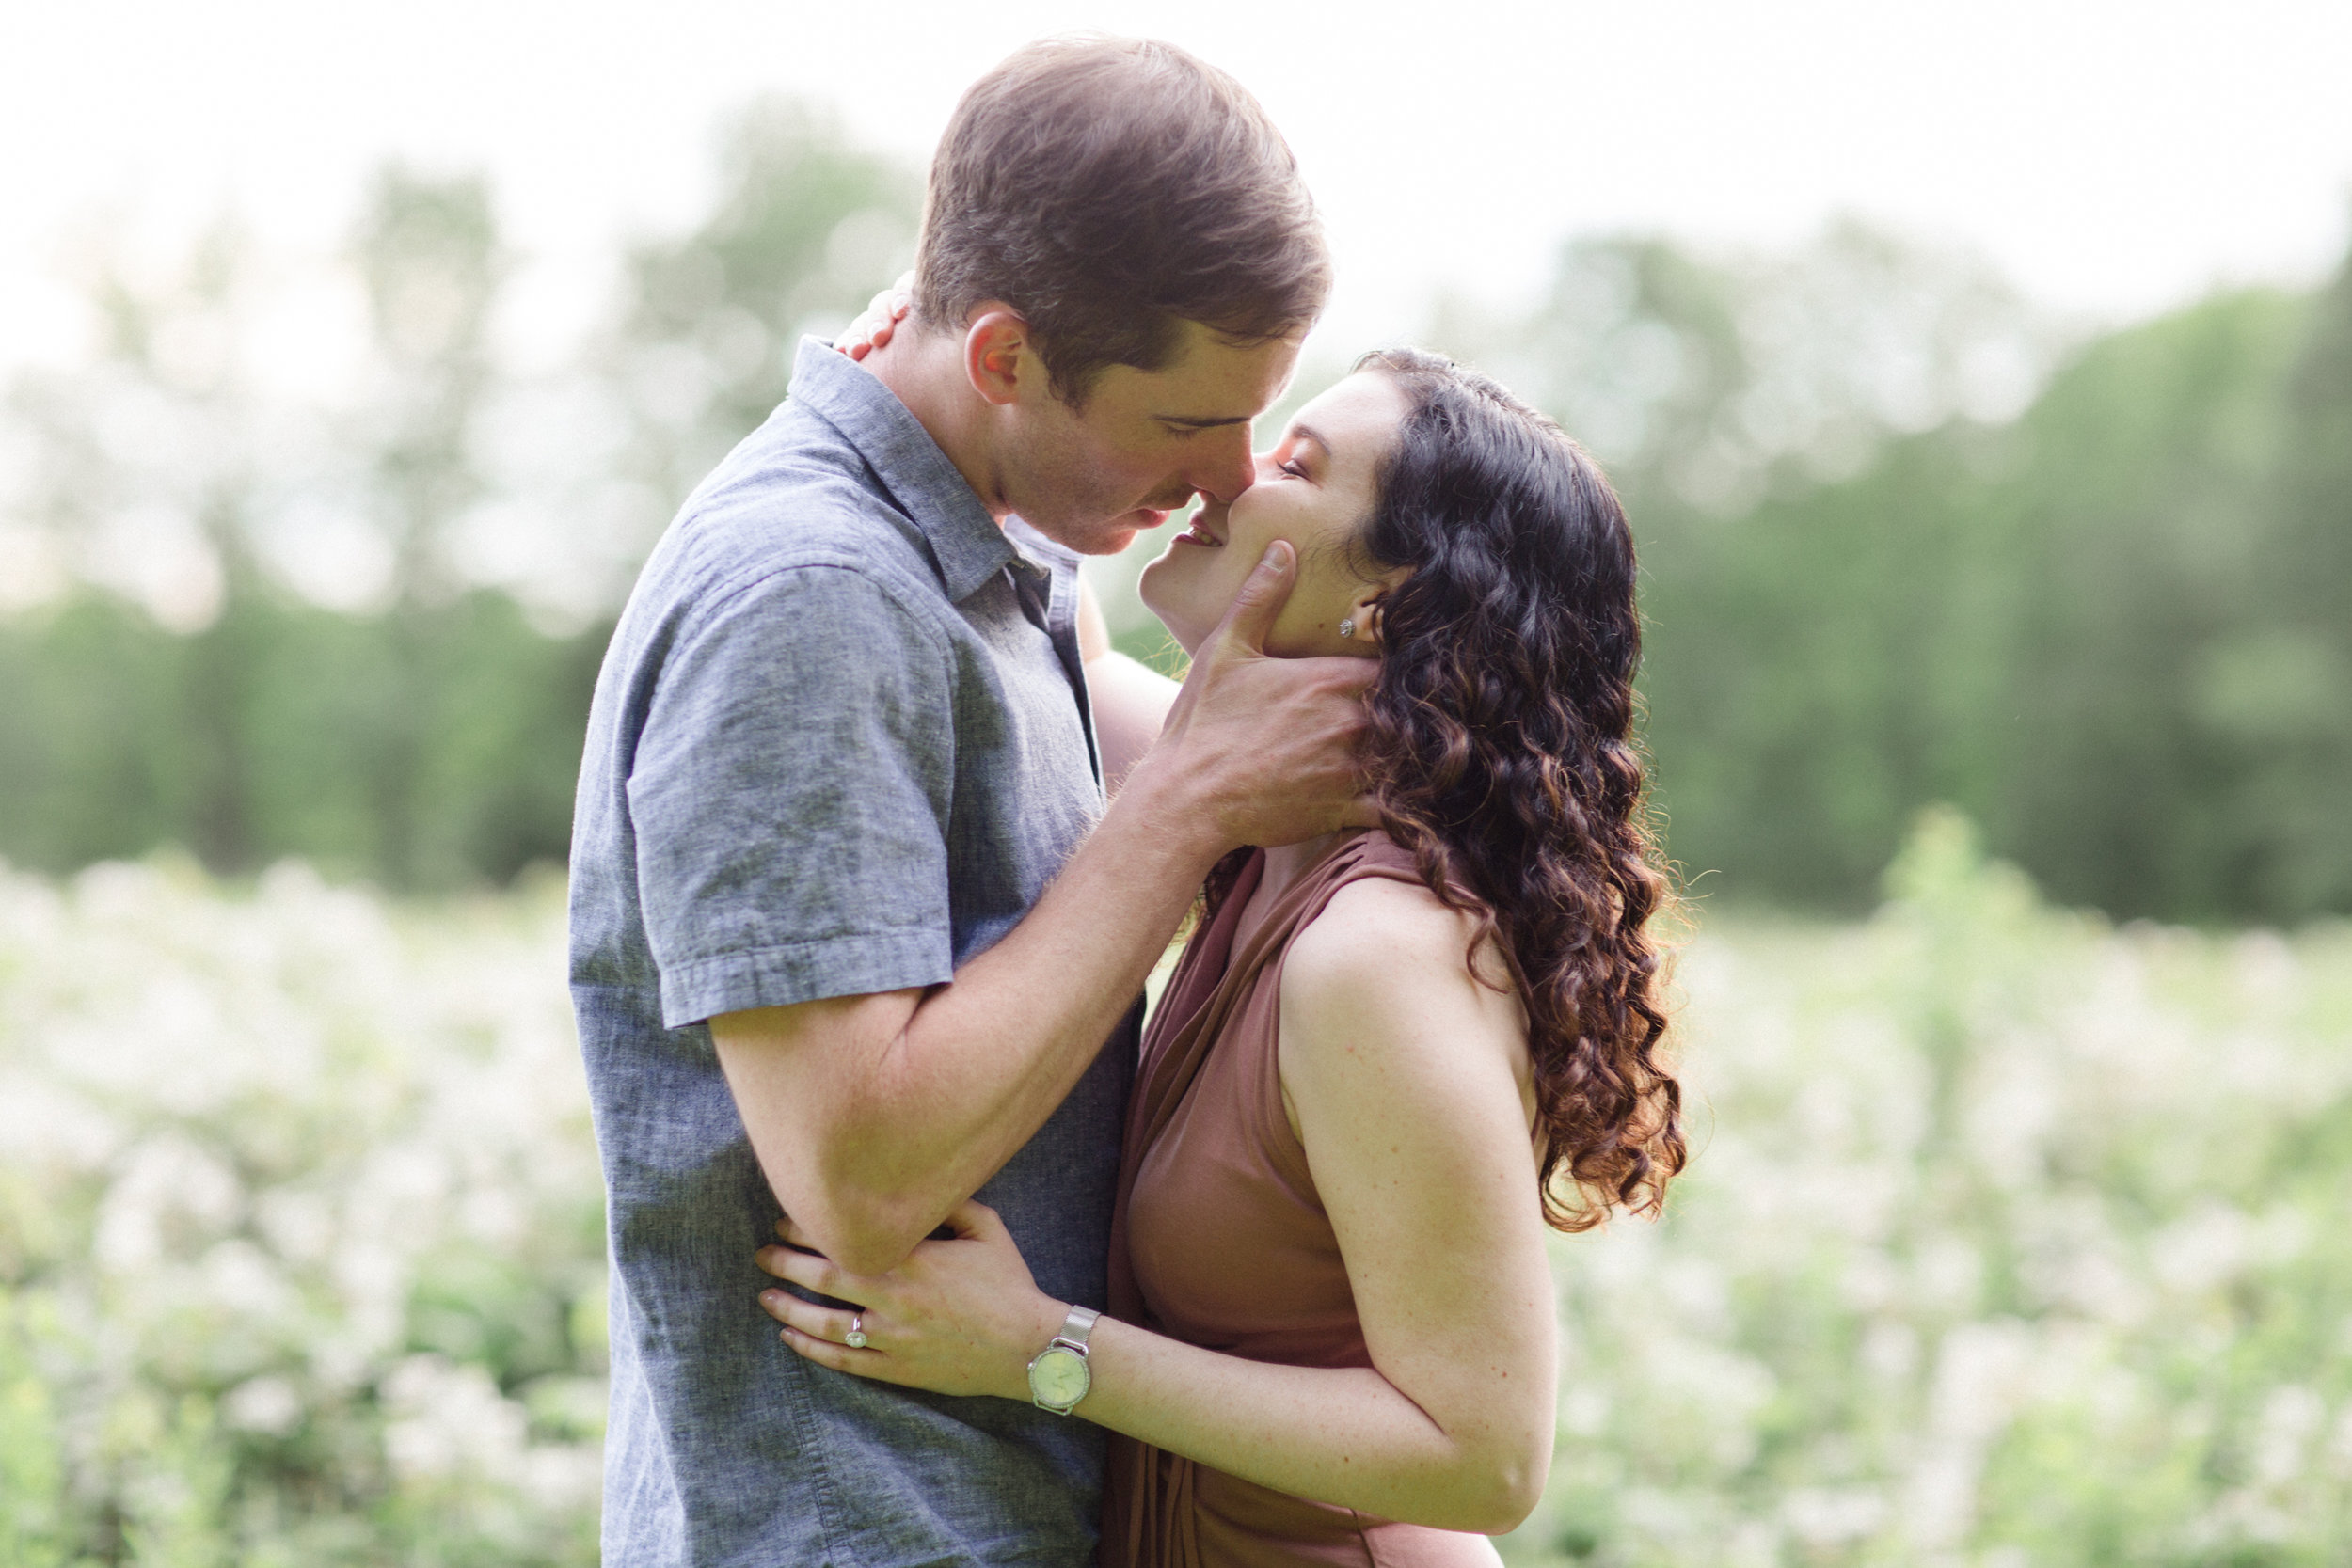 Moscow PA Engagement Session Photos_JDP-50.jpg